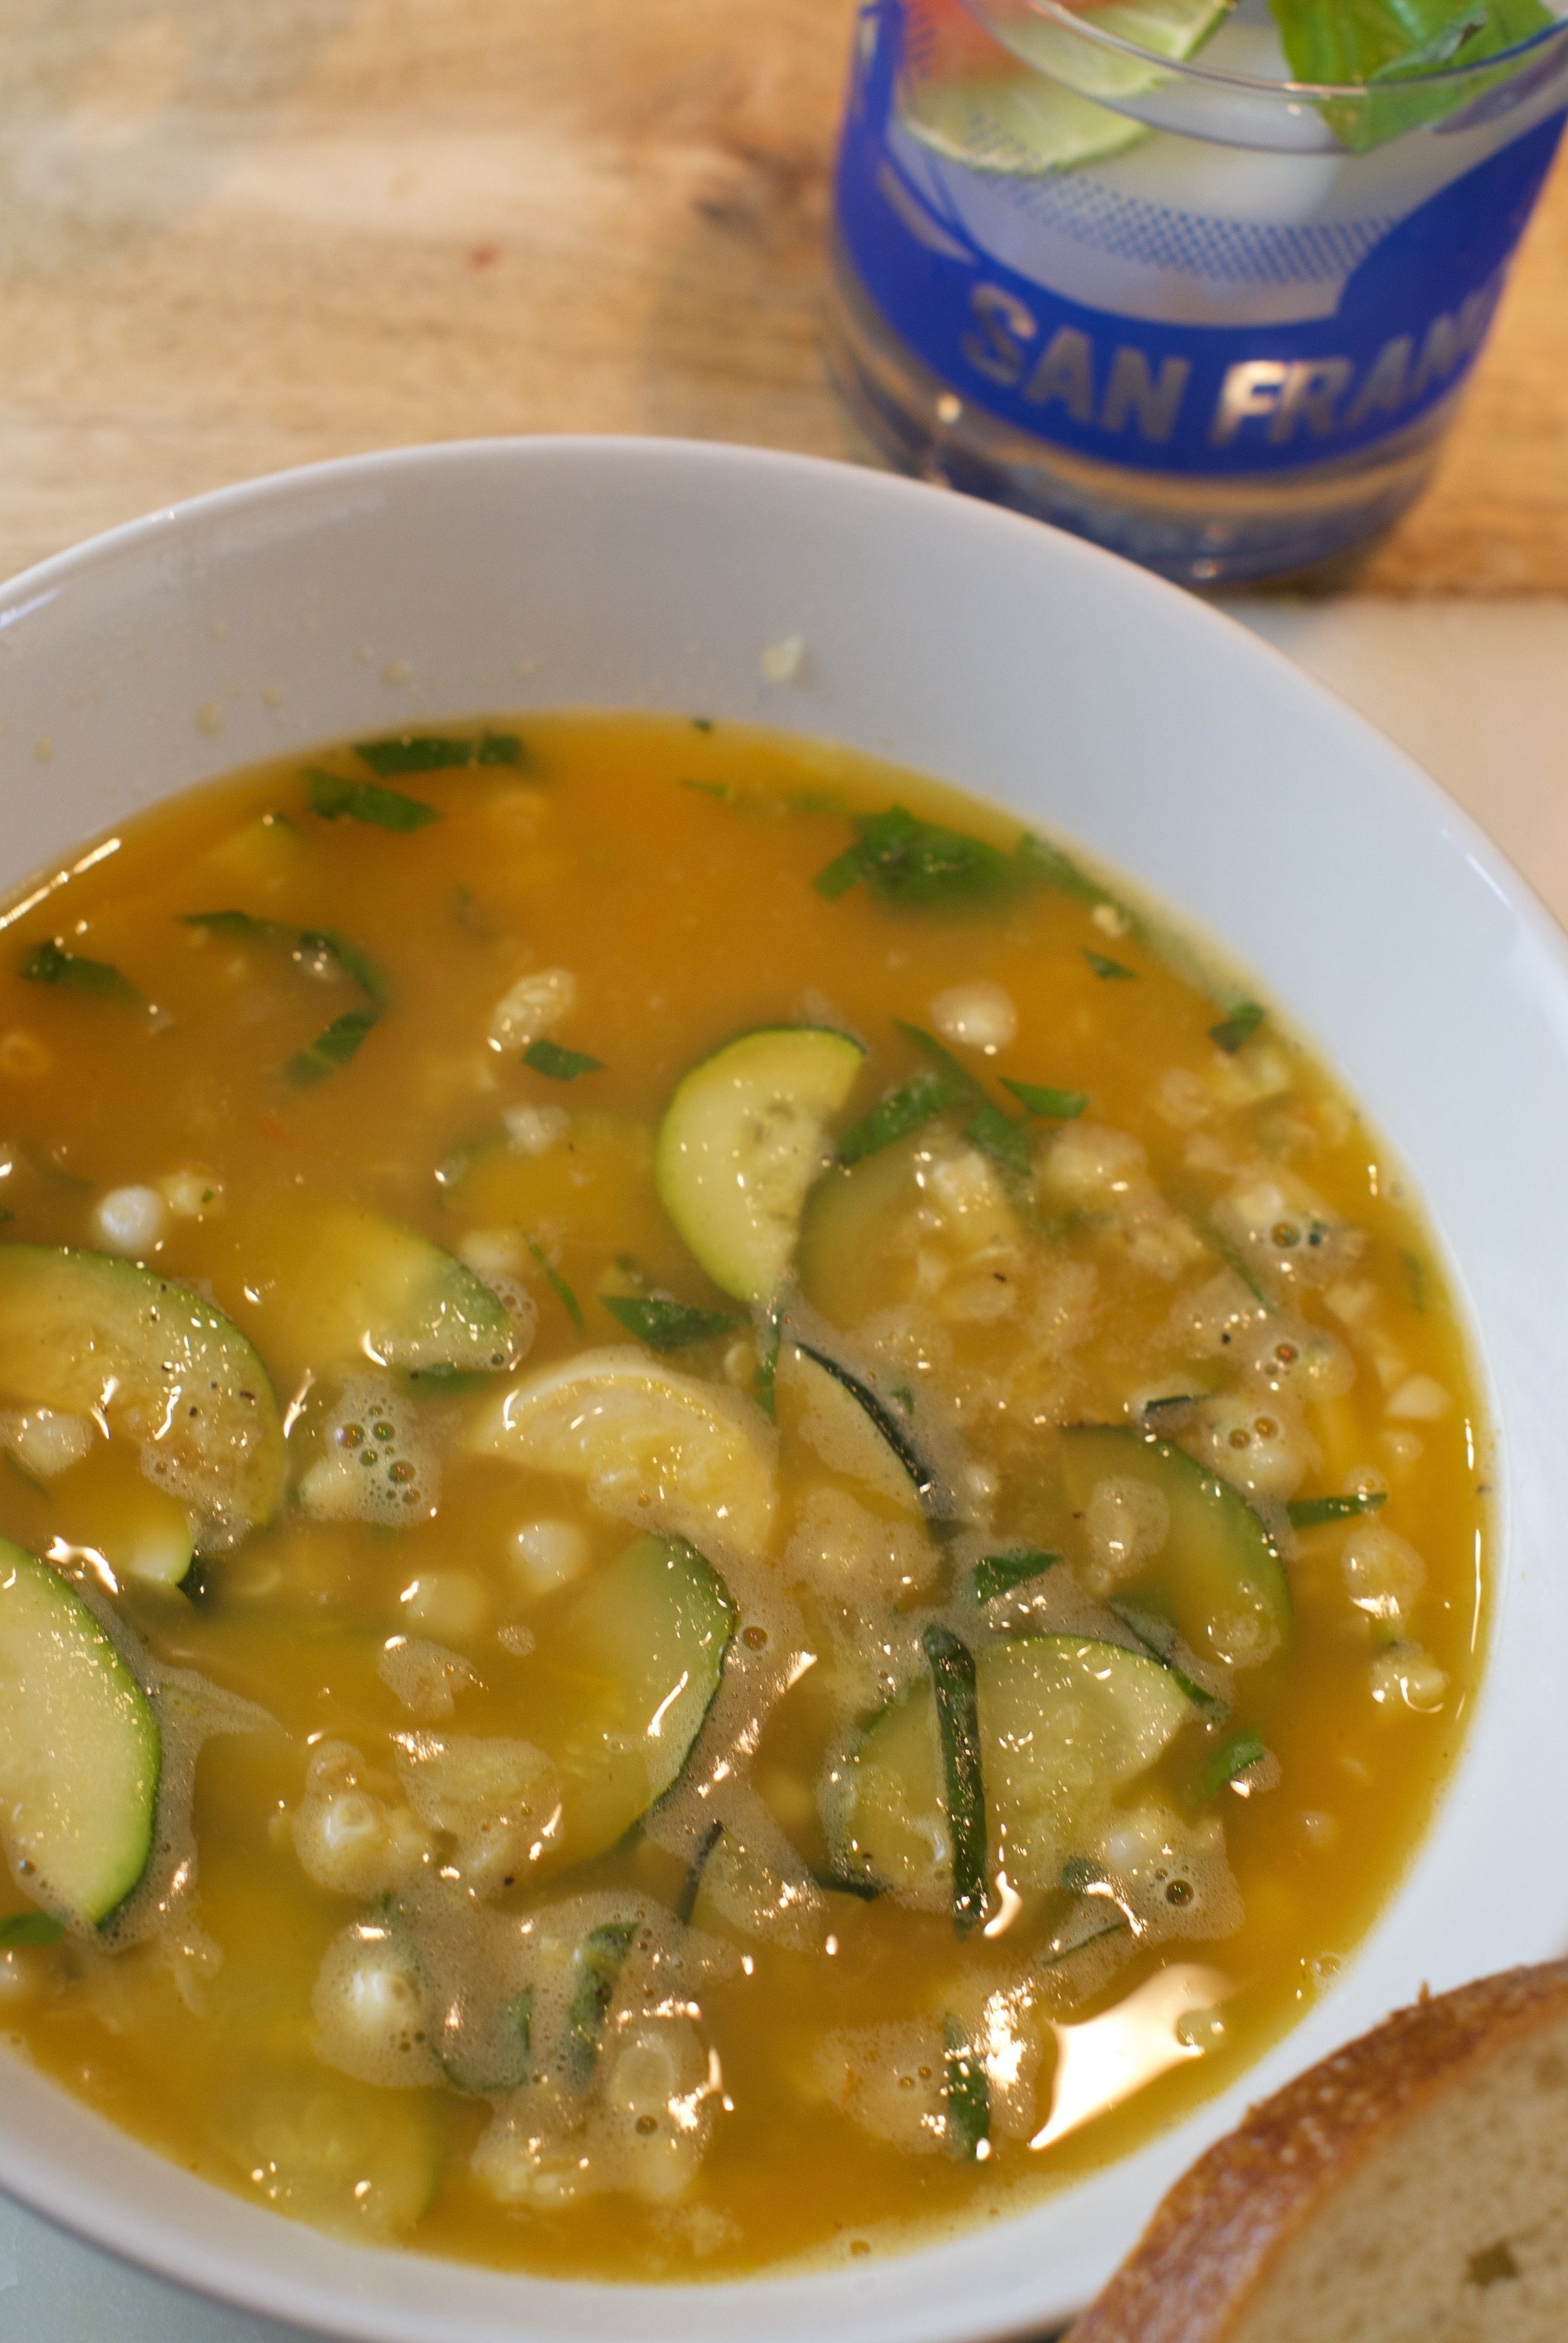 Summer Vegetable Soup with Roasted Corn and Zucchini